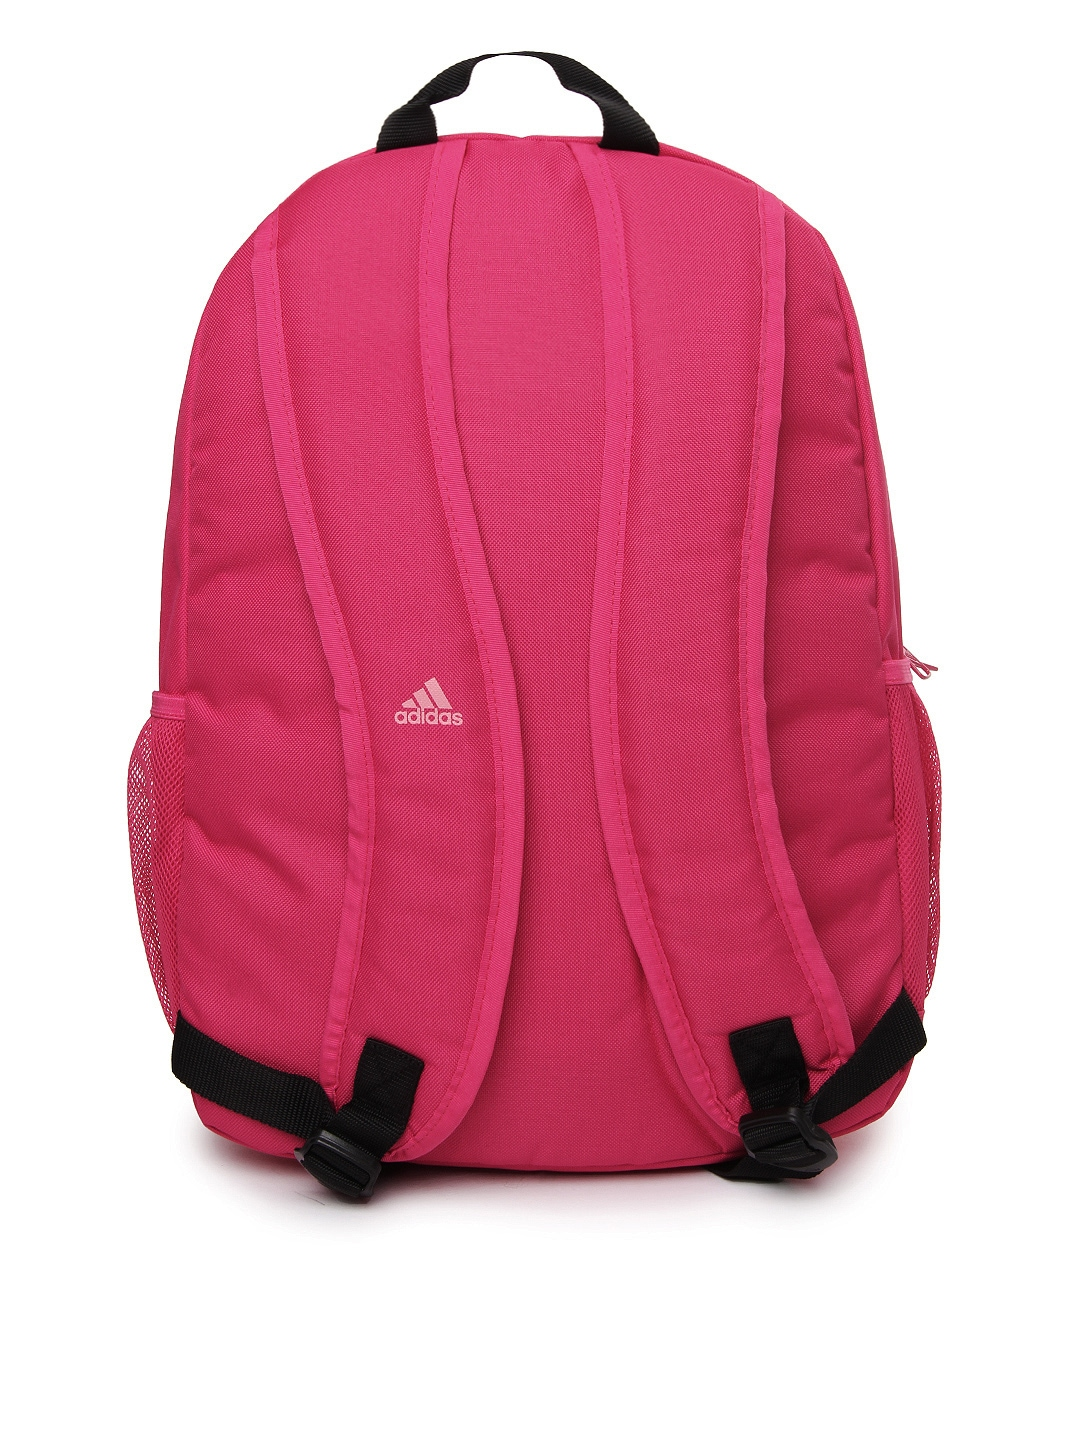 aa69d5331da Buy adidas childrens backpack   OFF39% Discounted